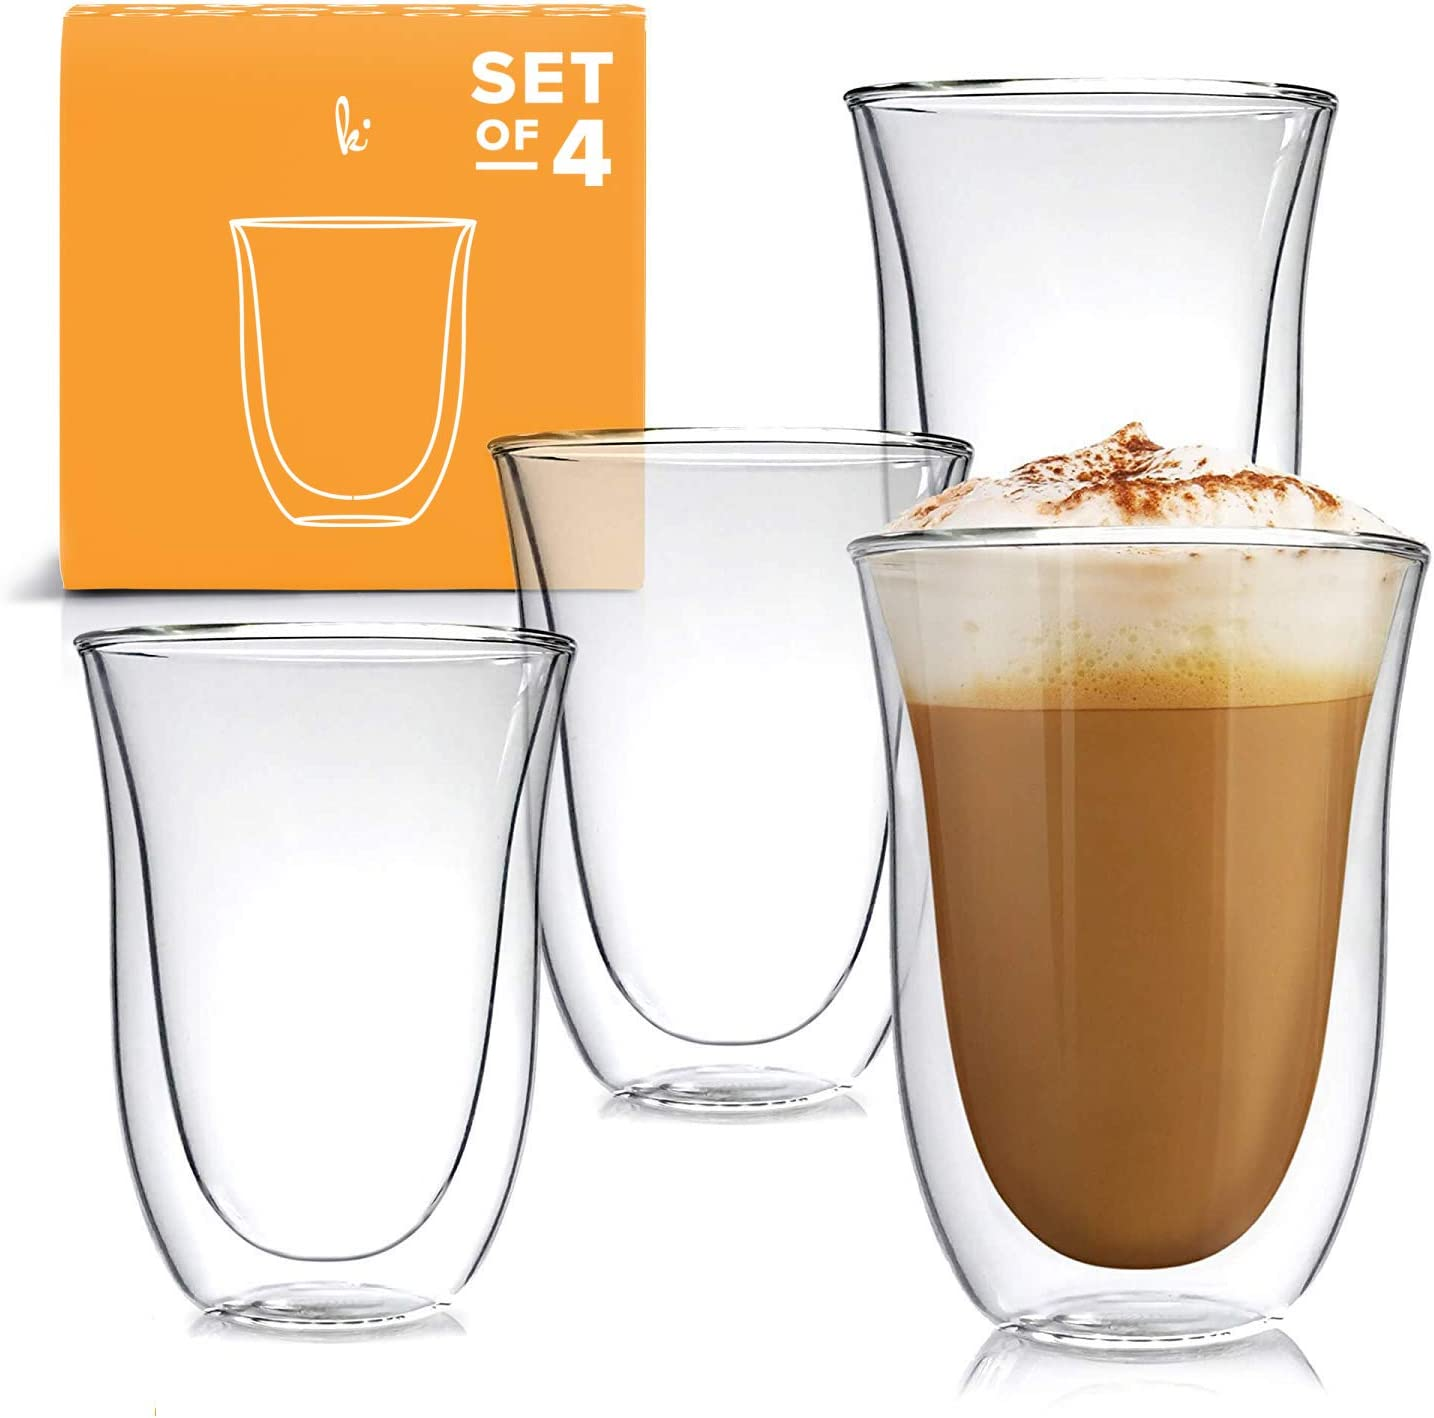 Amazon Com Latte Cups Double Walled Coffee Glasses Set Of 4 Clear Glass Thermo Insulated Stackable Mugs 7 5oz Coffee Cups Mugs